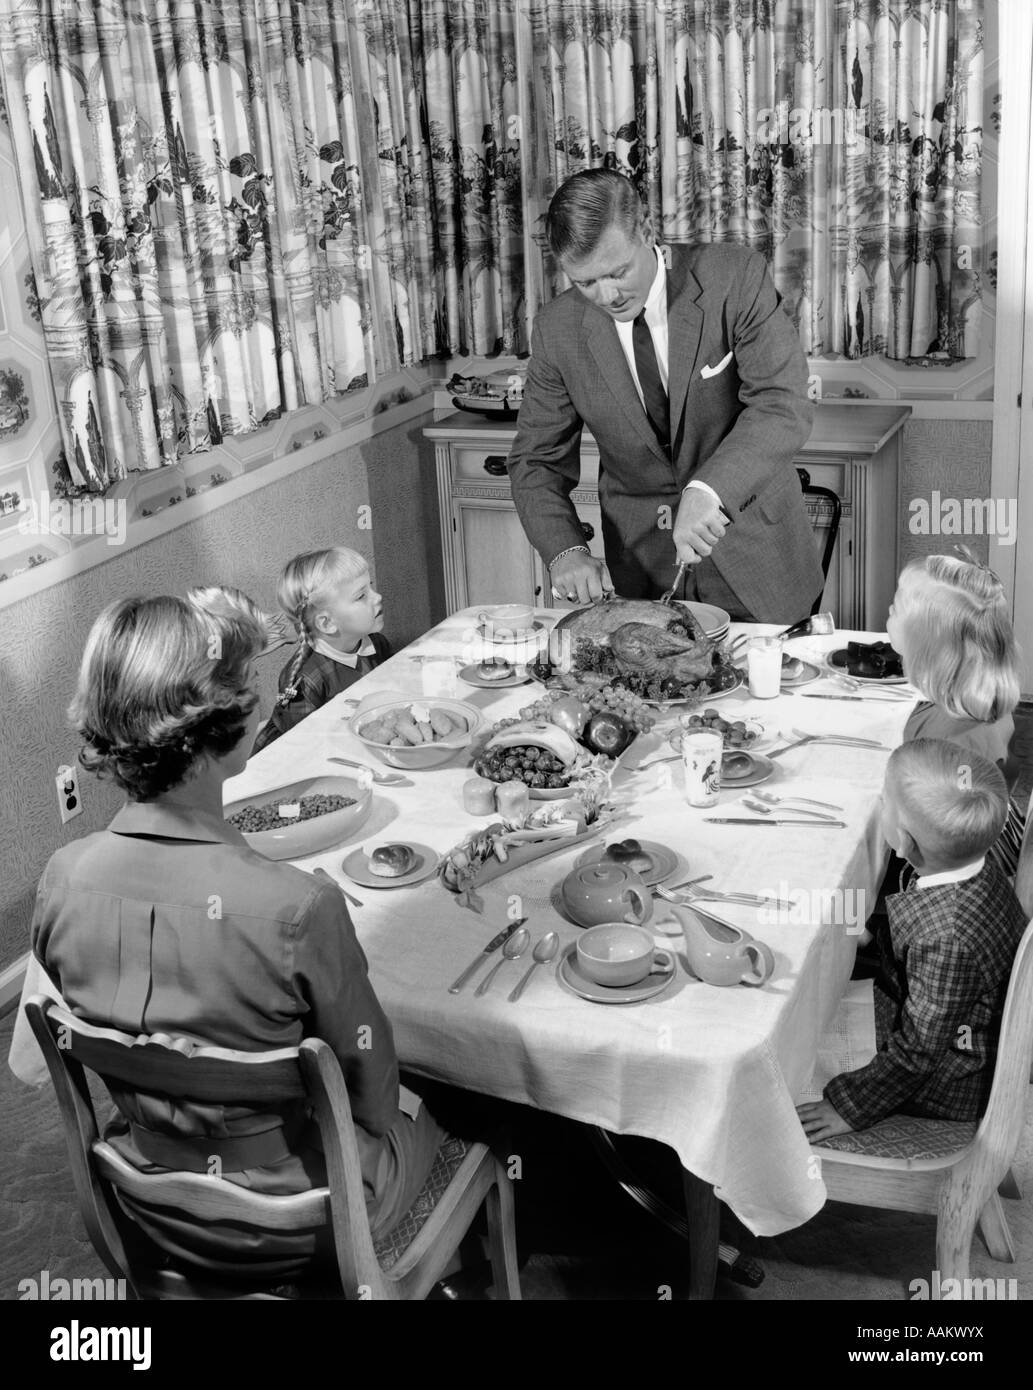 1950s FAMILY OF 5 AT DINING ROOM TABLE FOR THANKSGIVING DINNER WITH FATHER  CARVING TURKEY